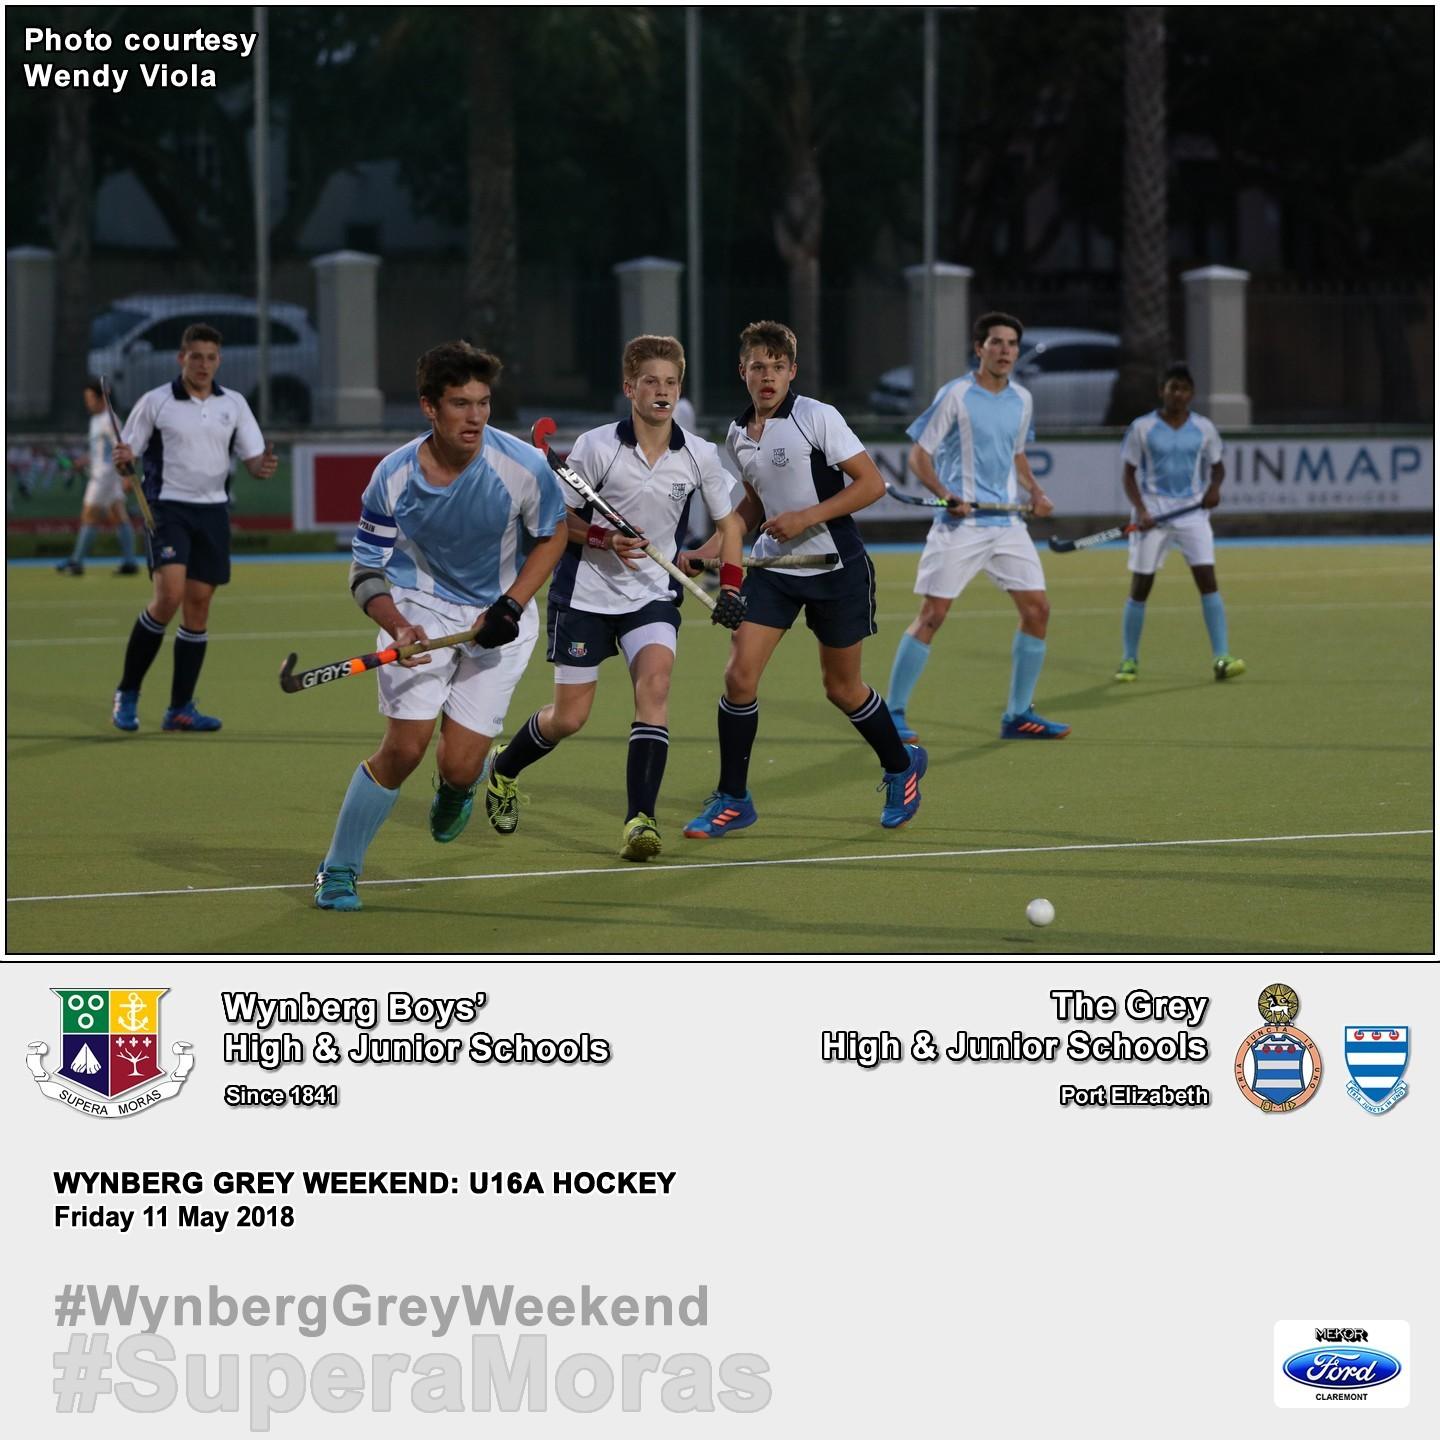 U16A vs Grey High, Album II, Friday 11 May 2018